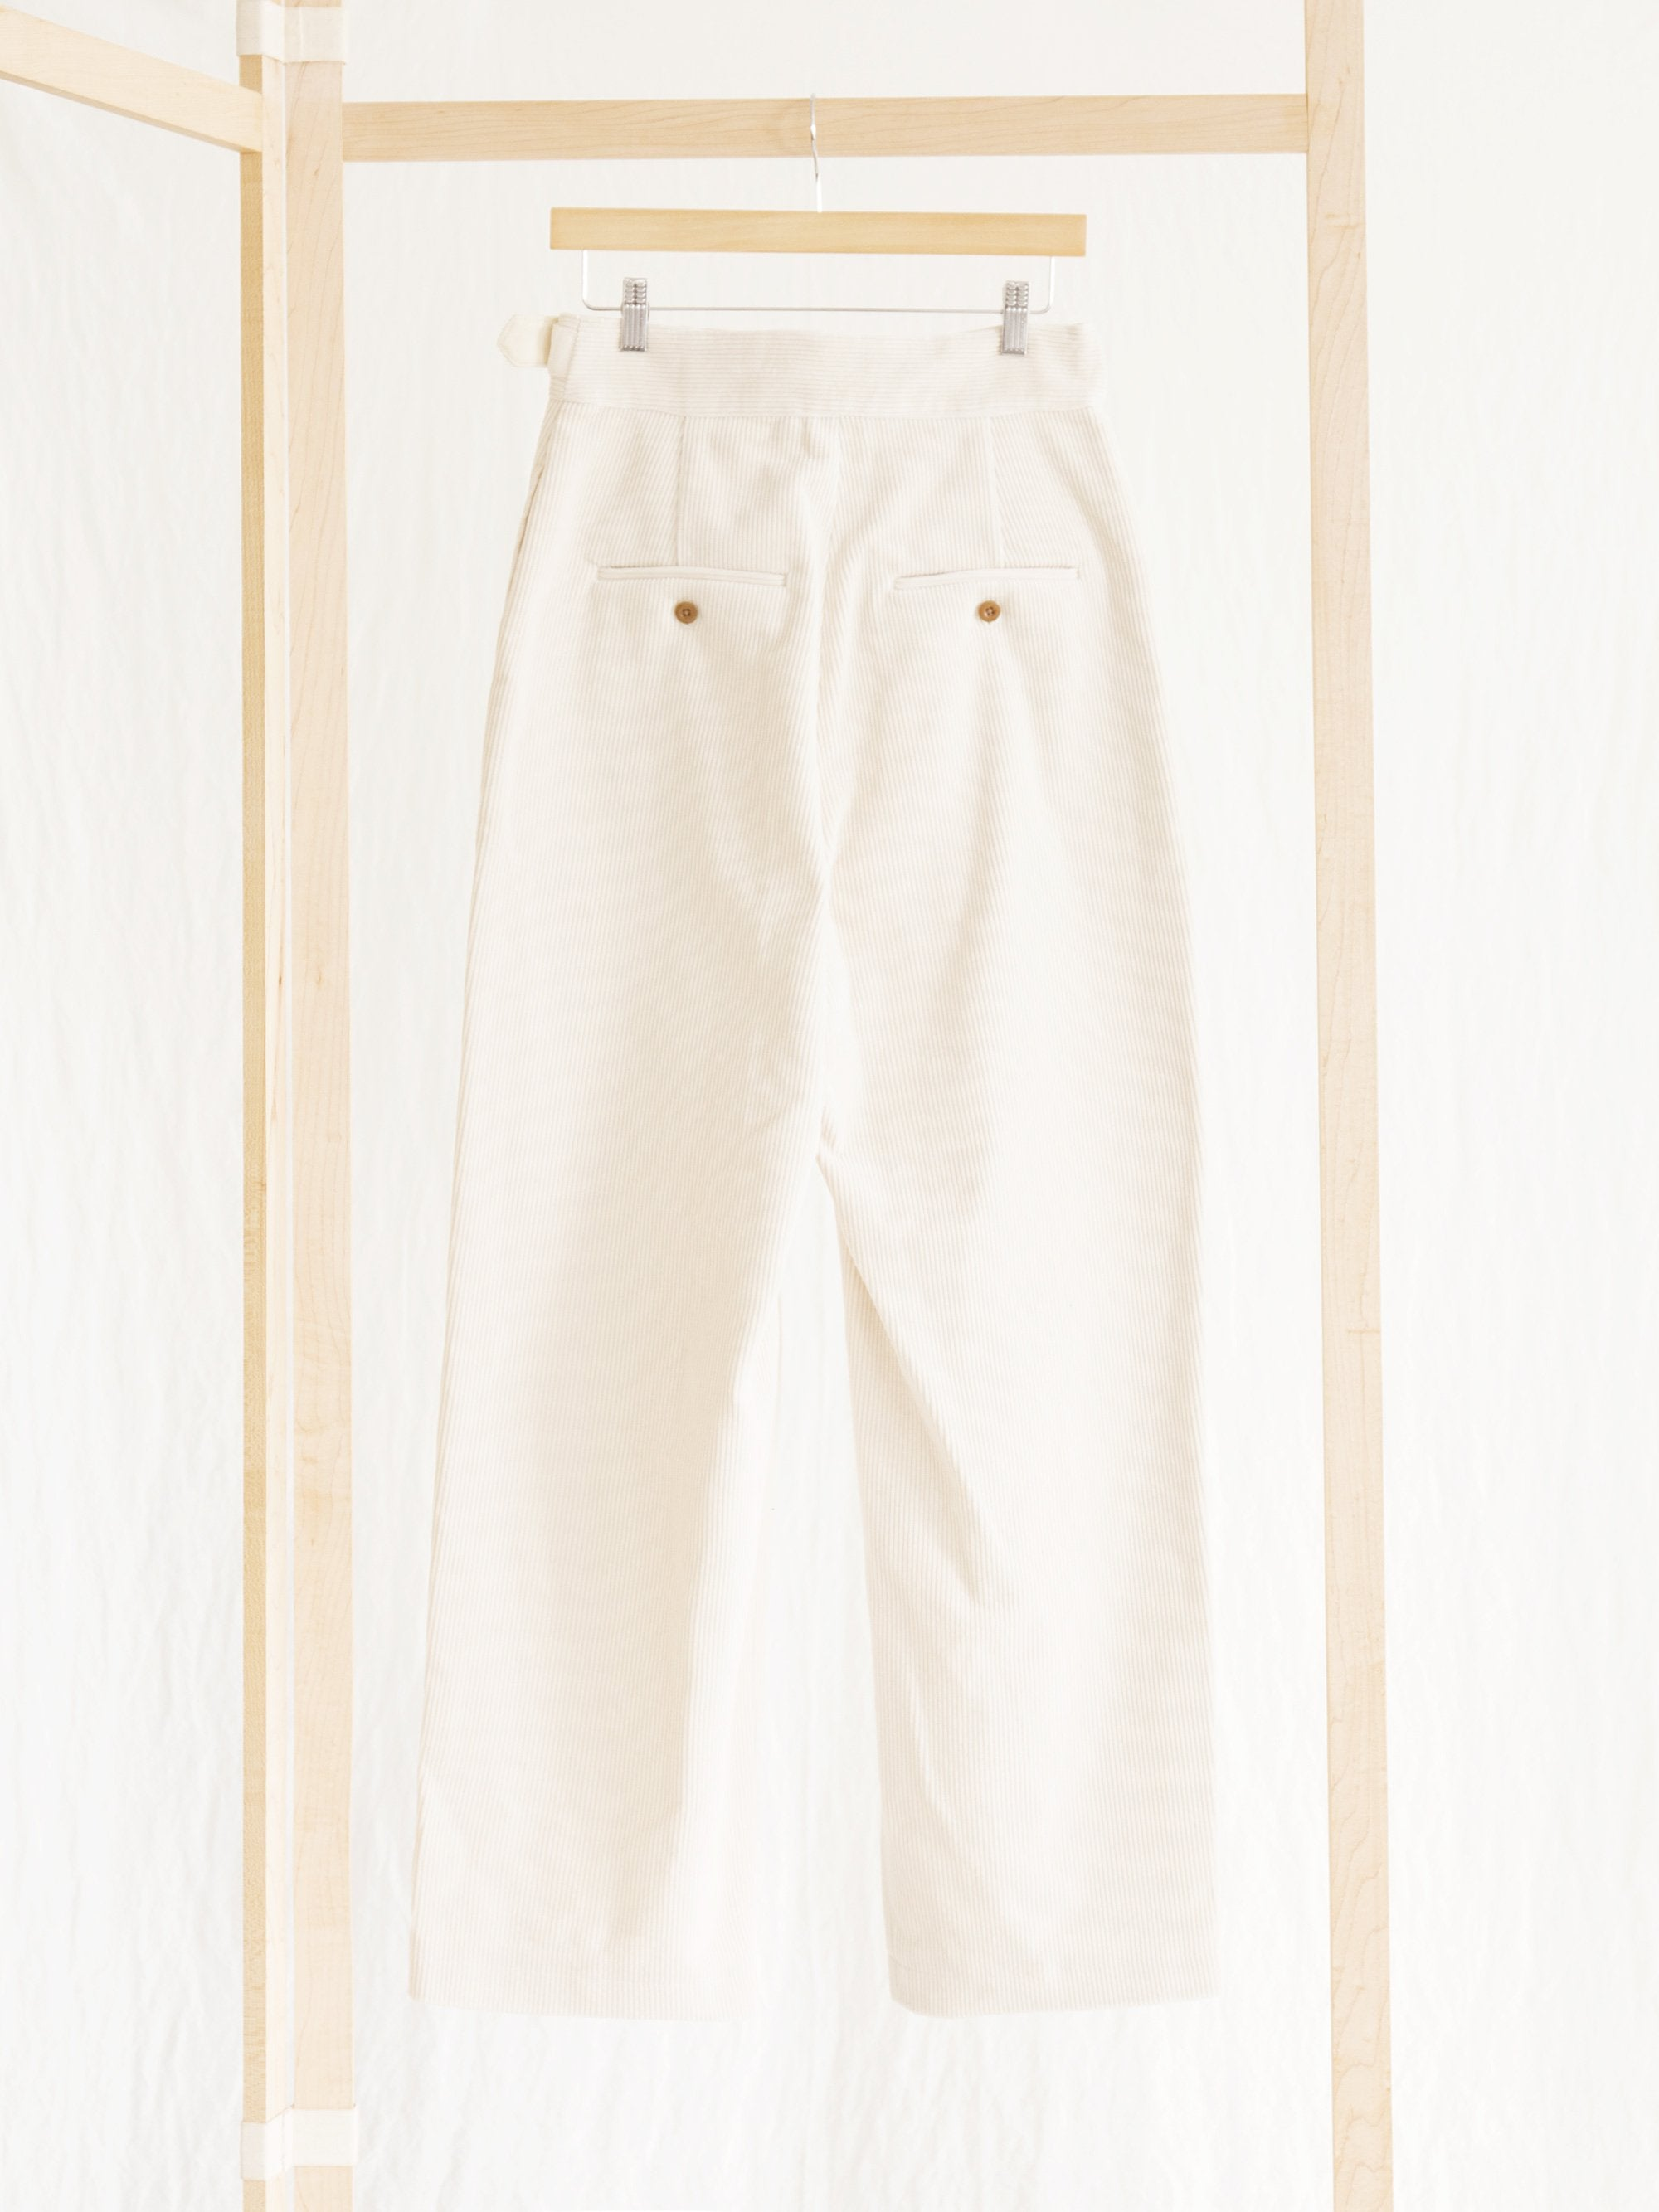 Namu Shop - Phlannel Cotton Corduroy Gurkha Trousers - Ivory